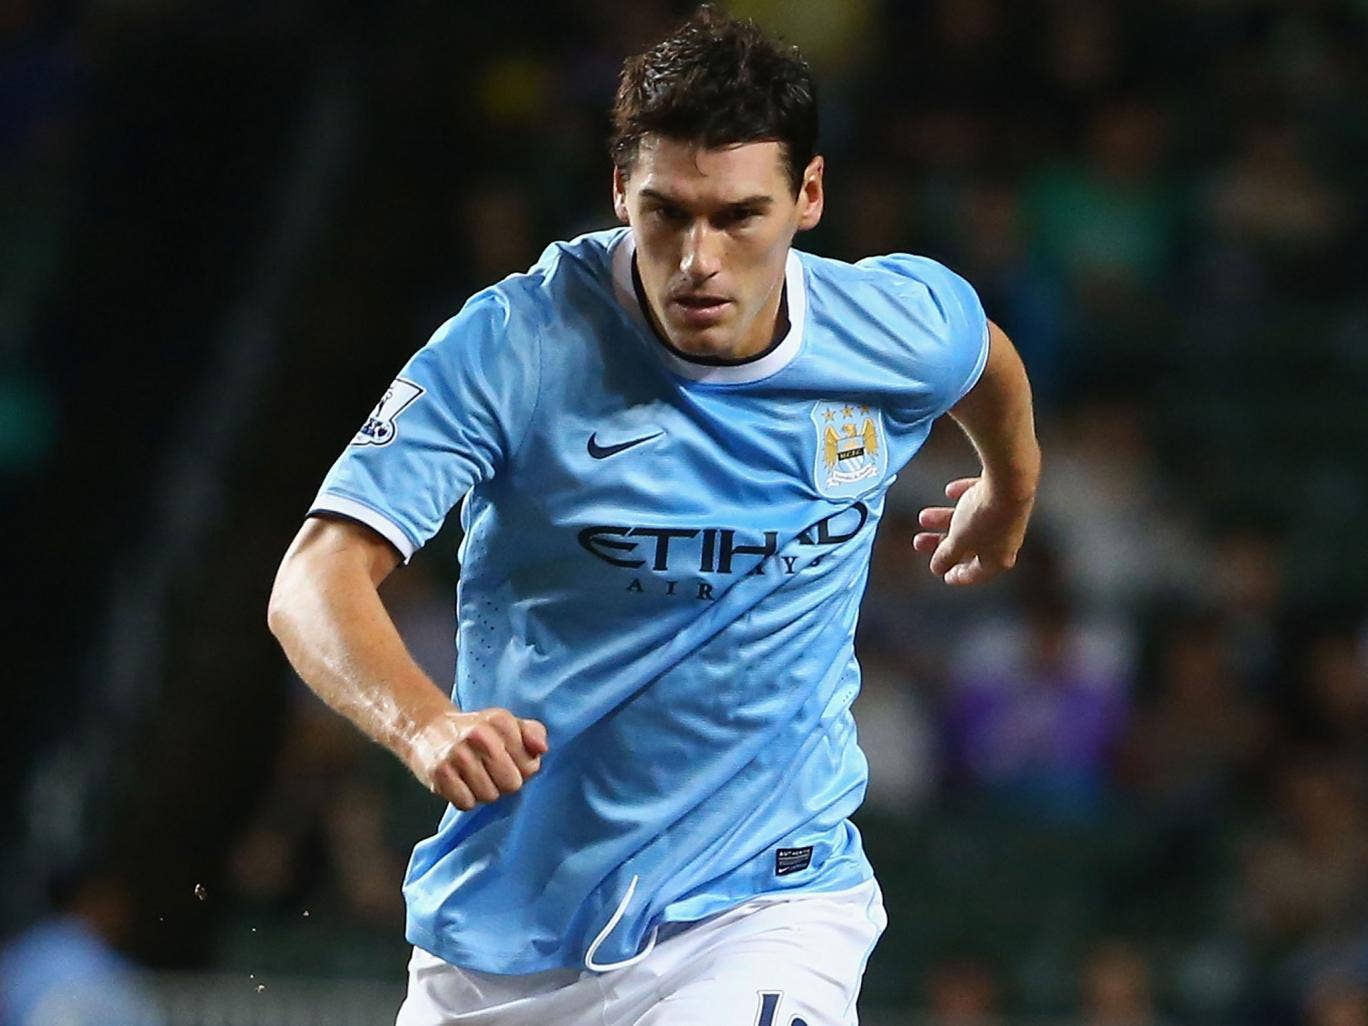 Gareth Barry will be allowed to leave Manchester City